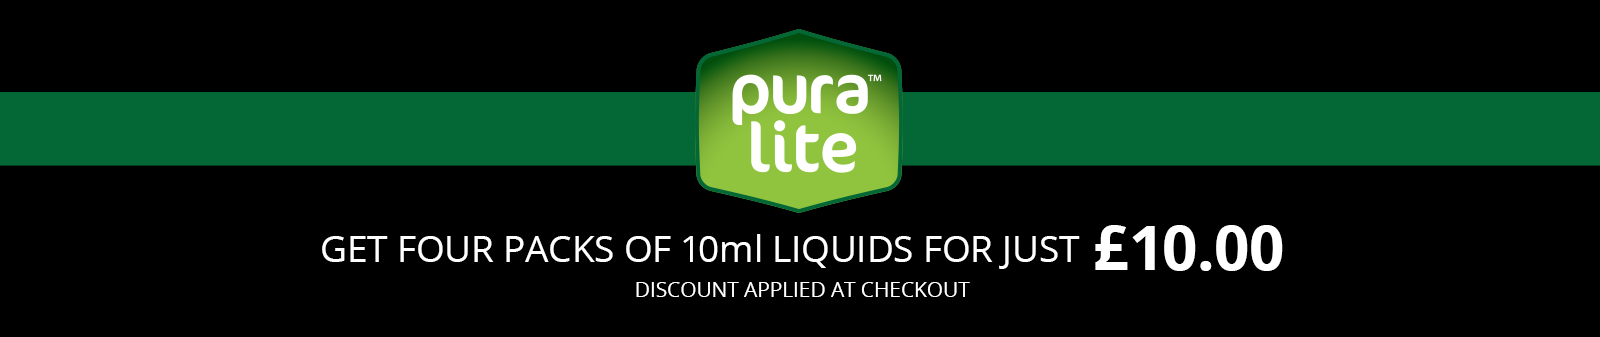 Puralite Special Offer